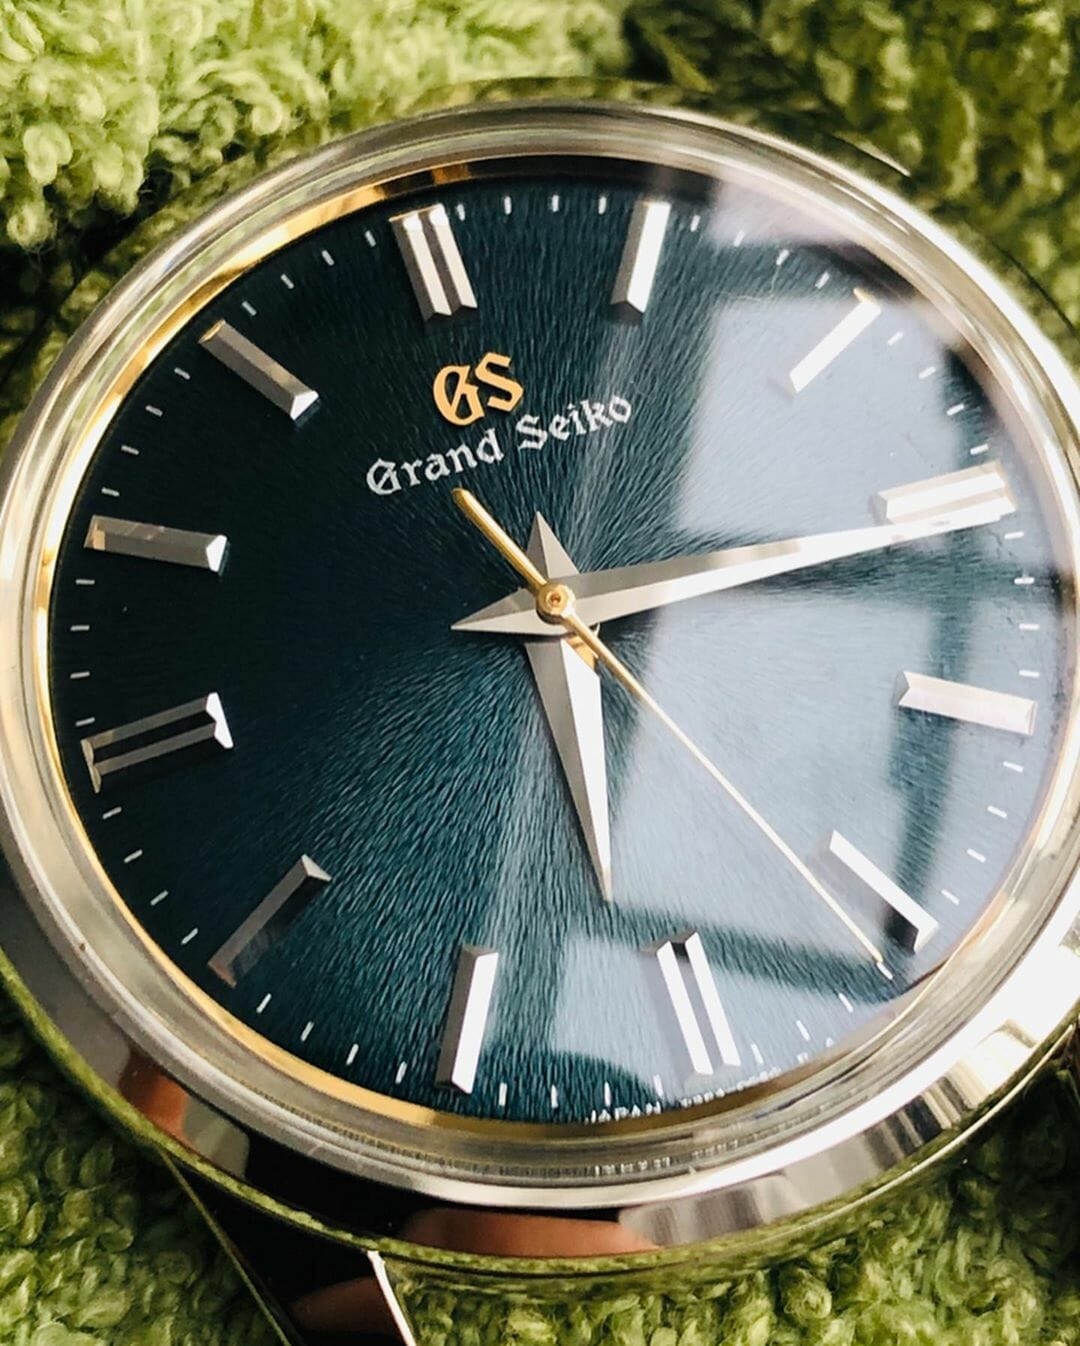 2 Grand Seiko SBGW255 Tongsa With Jadeite Green Dial by IG @watchrookiee - 2